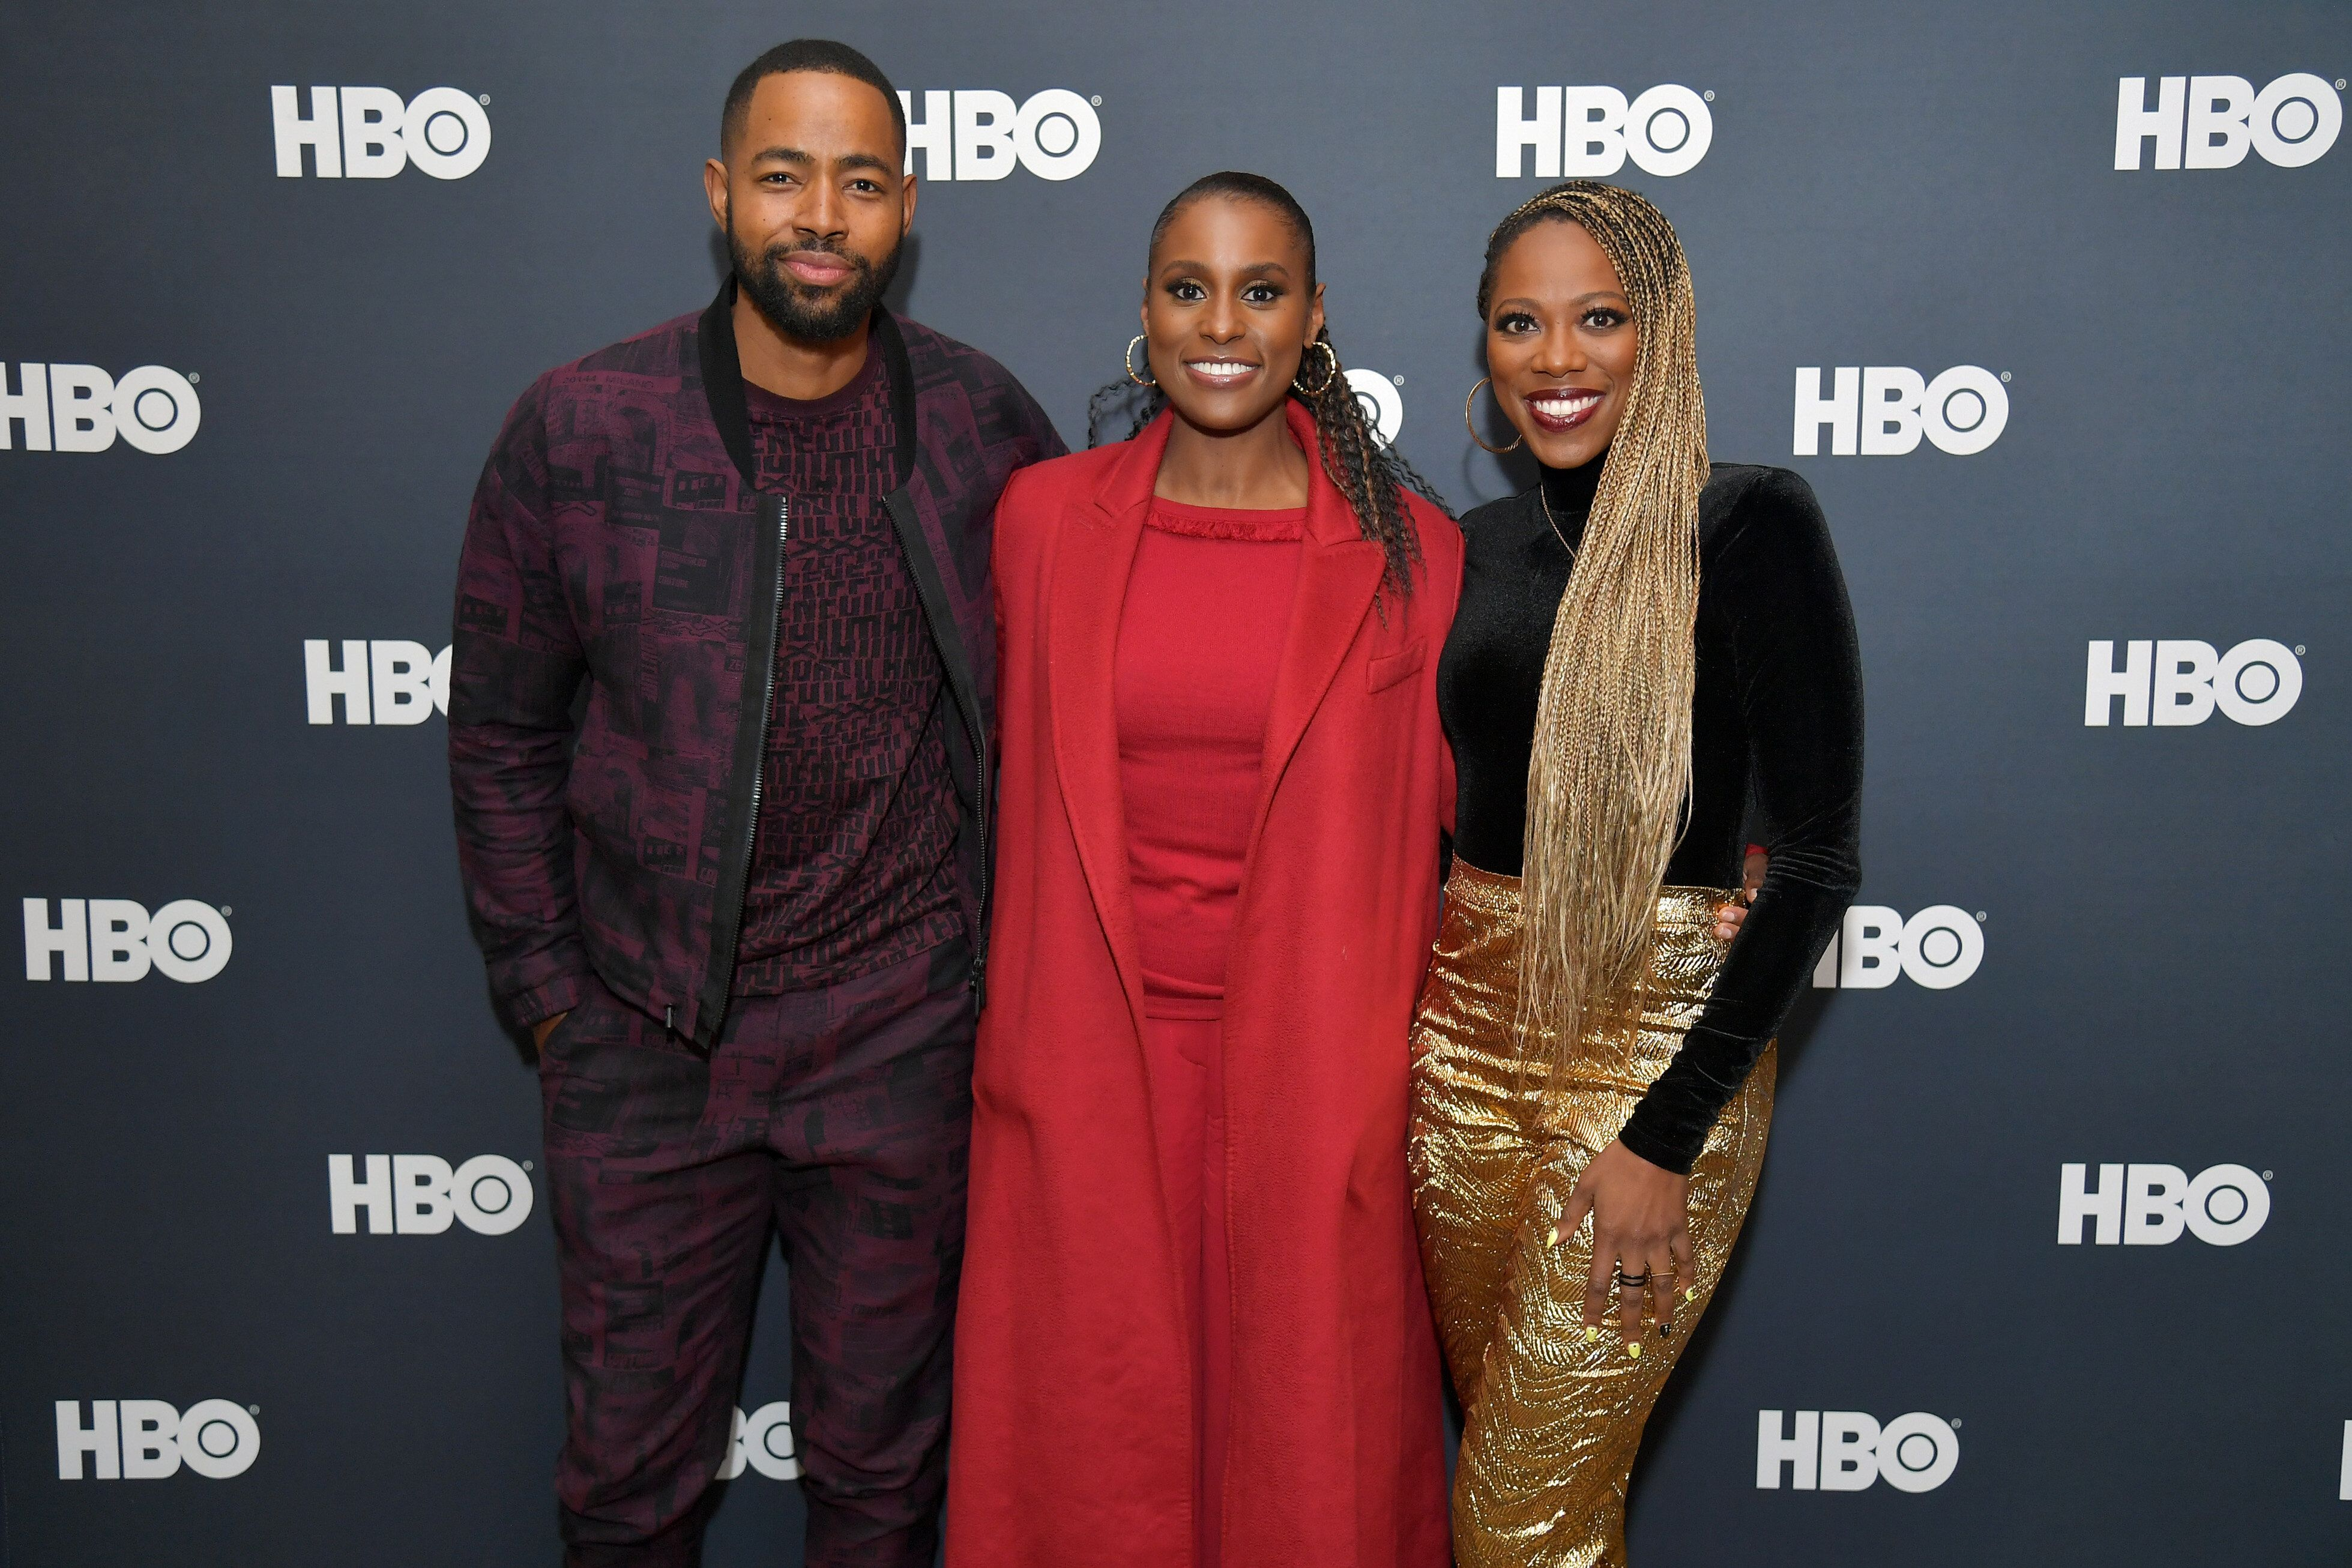 'Insecure' Fans Rejoice, The HBO Series Is Renewed For Season 5 1